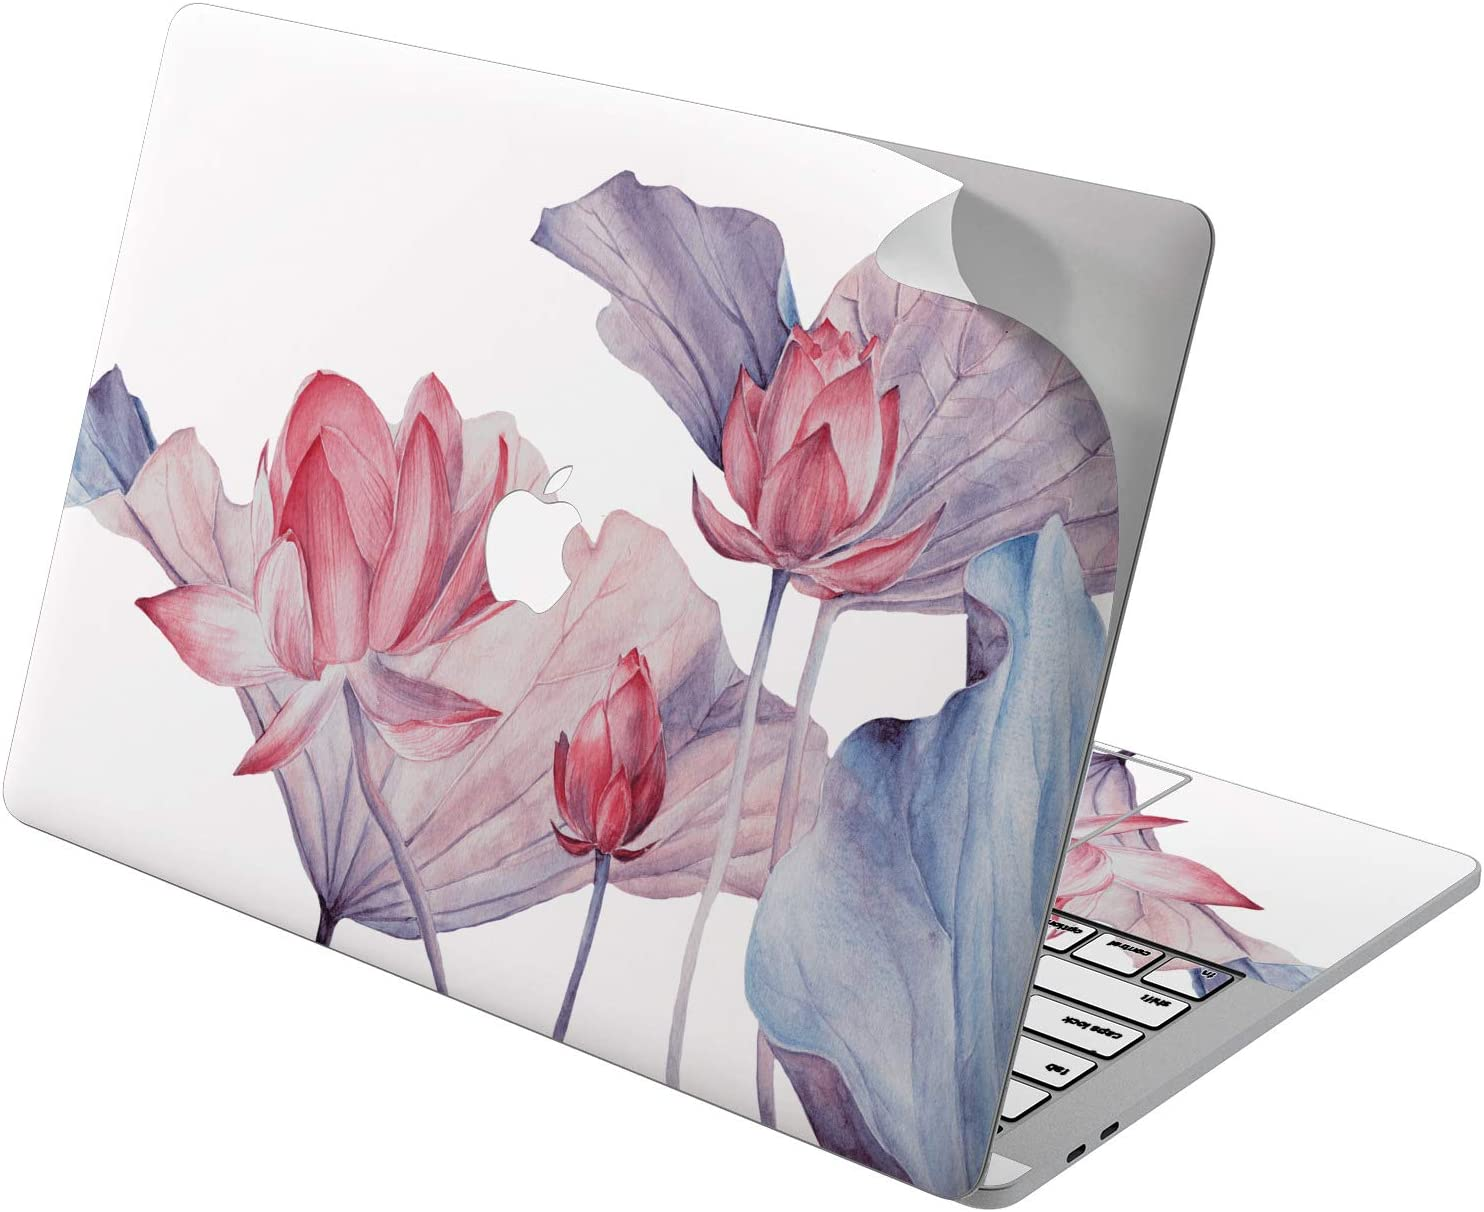 "Cavka Vinyl Decal Skin for Apple MacBook Pro 13"" 2019 15"" 2018 Air 13"" 2020 Retina 2015 Mac 11"" Mac 12"" Print Floral Lily Laptop Cover Water Protective Tender Beautiful Flowers Lotus Sticker Design"